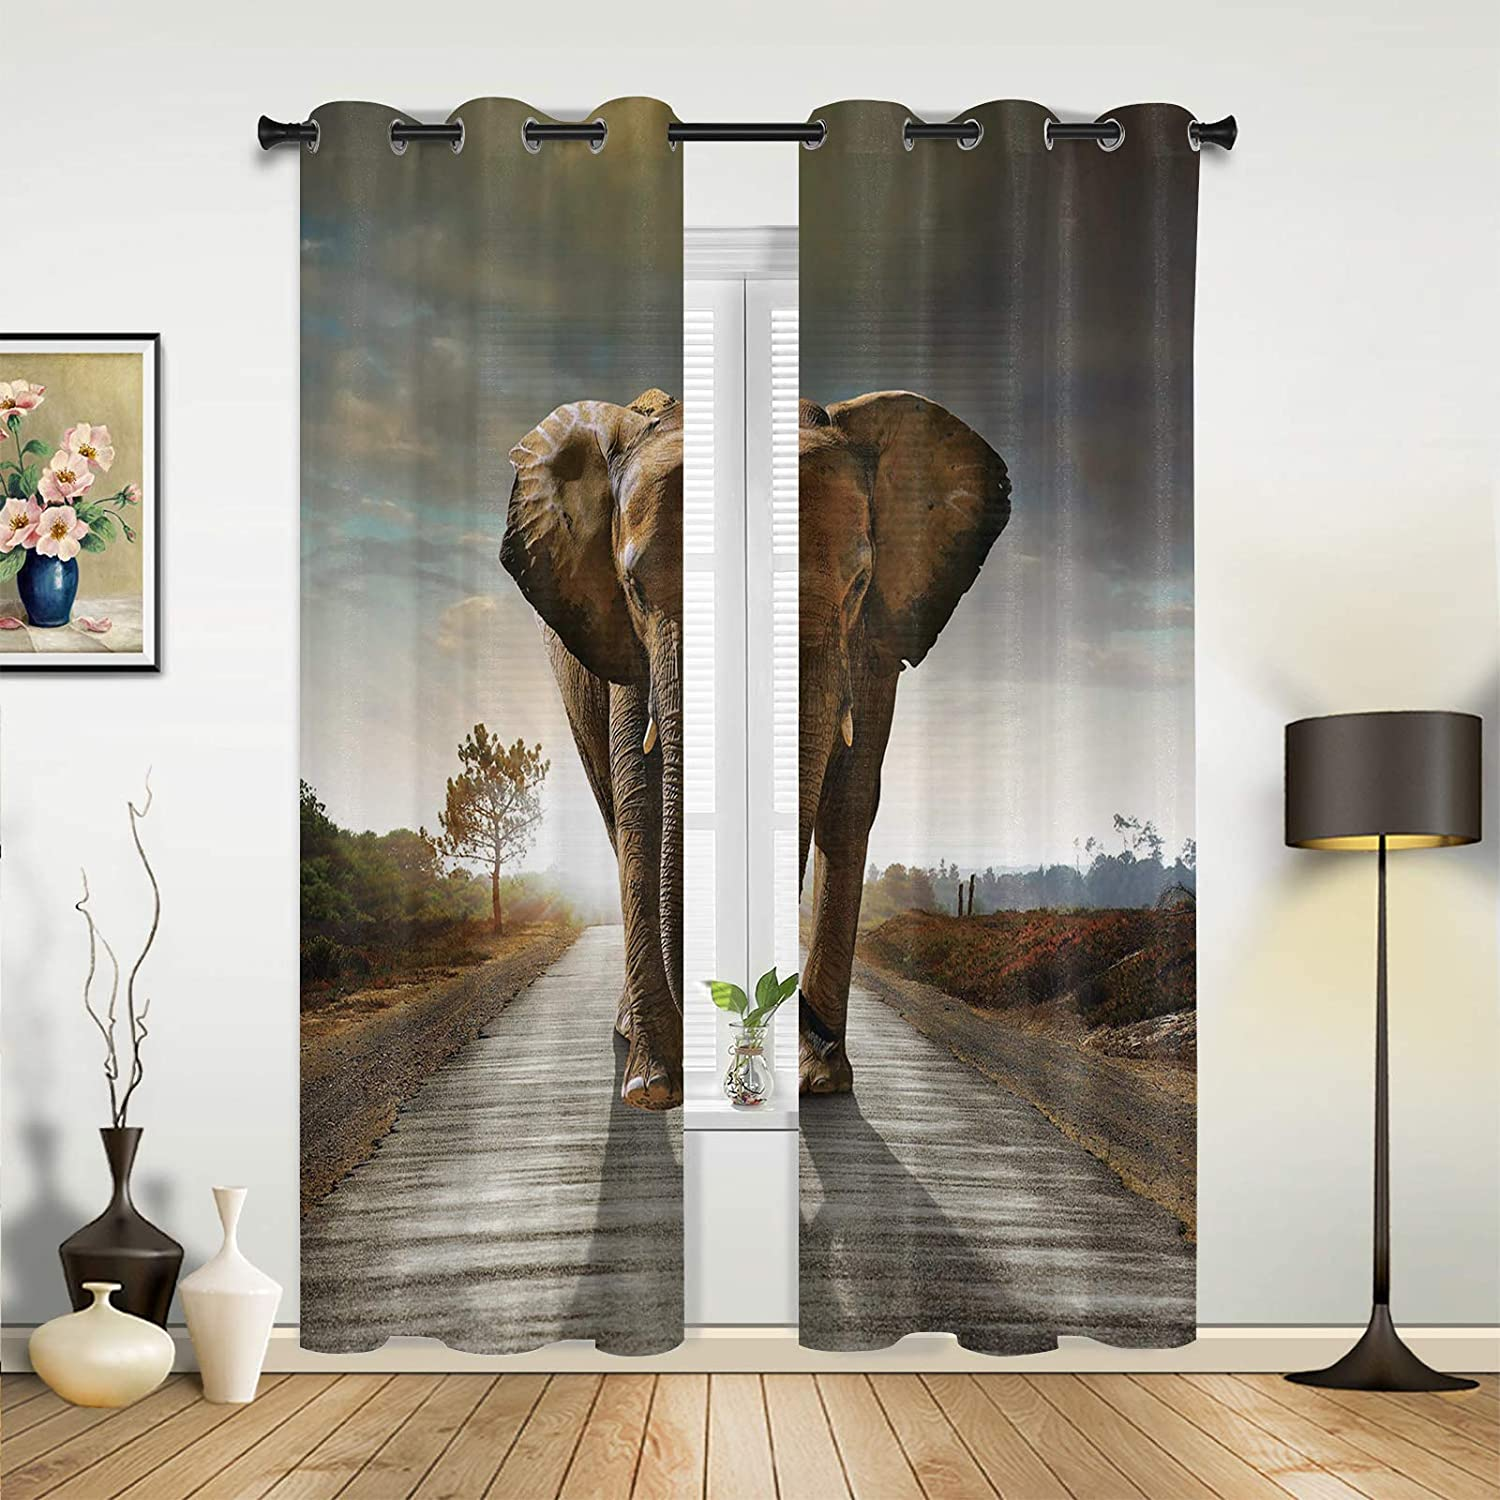 Beauty Decor Window Max 63% OFF Sheer Curtains for Funny Bedroom Max 60% OFF Room Living